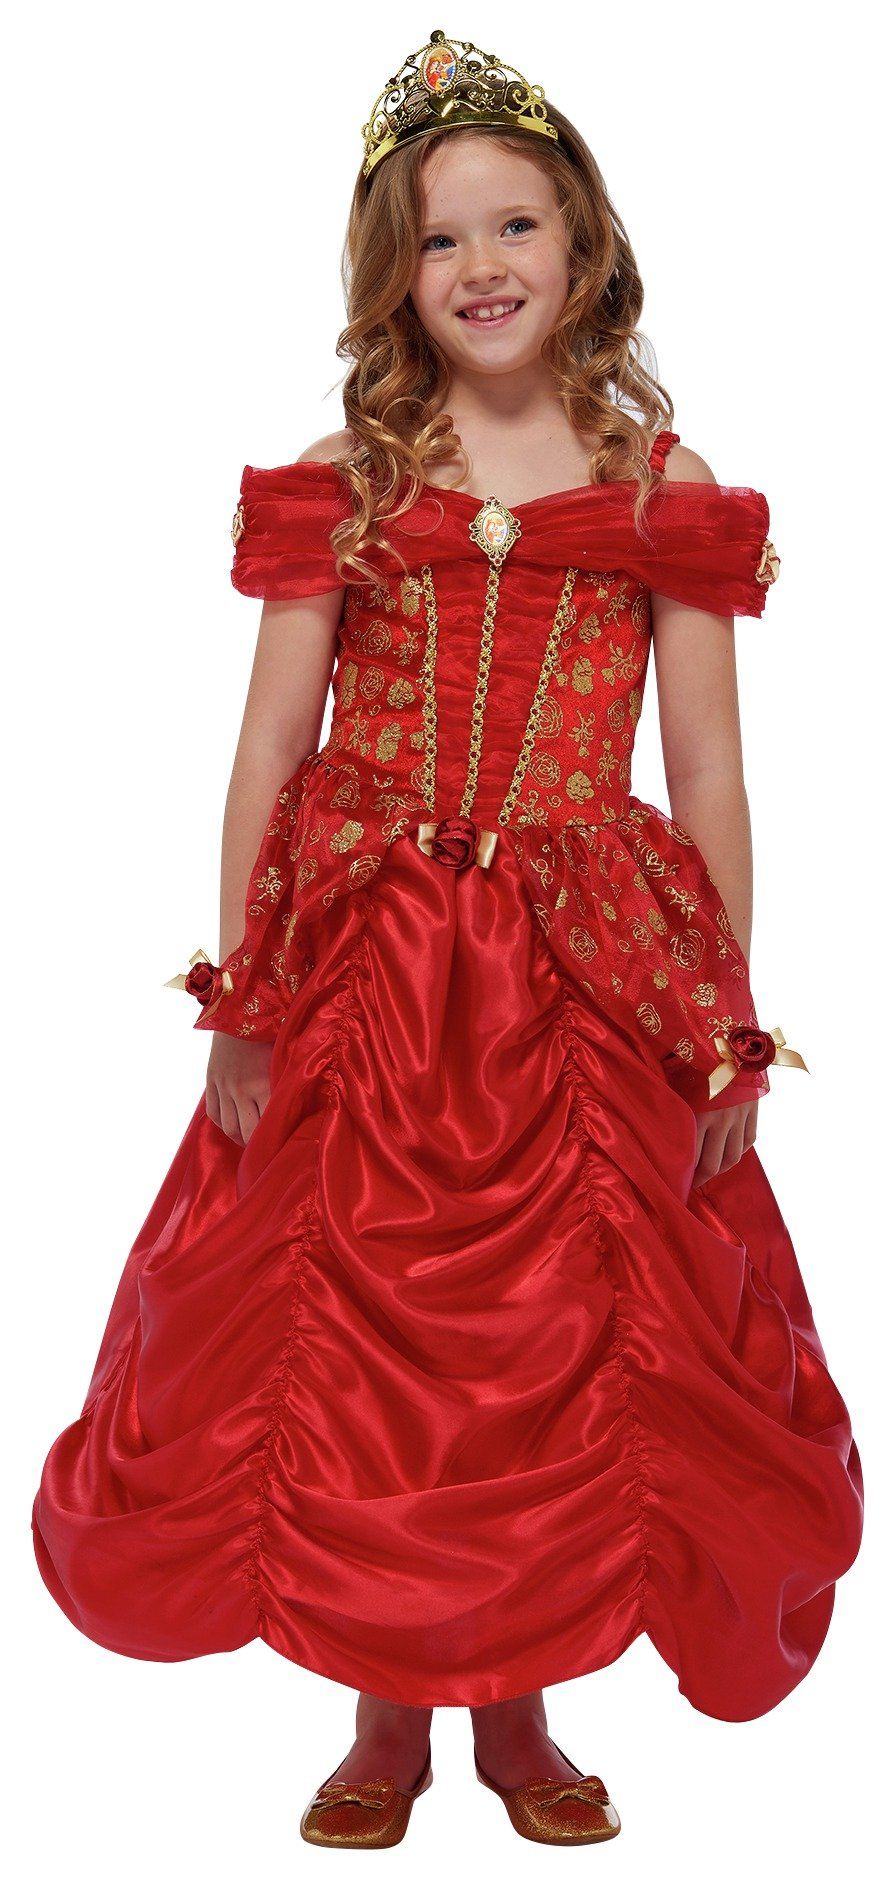 Image of Disney Princess Belle Fancy Dress Costume - 3-4 Years